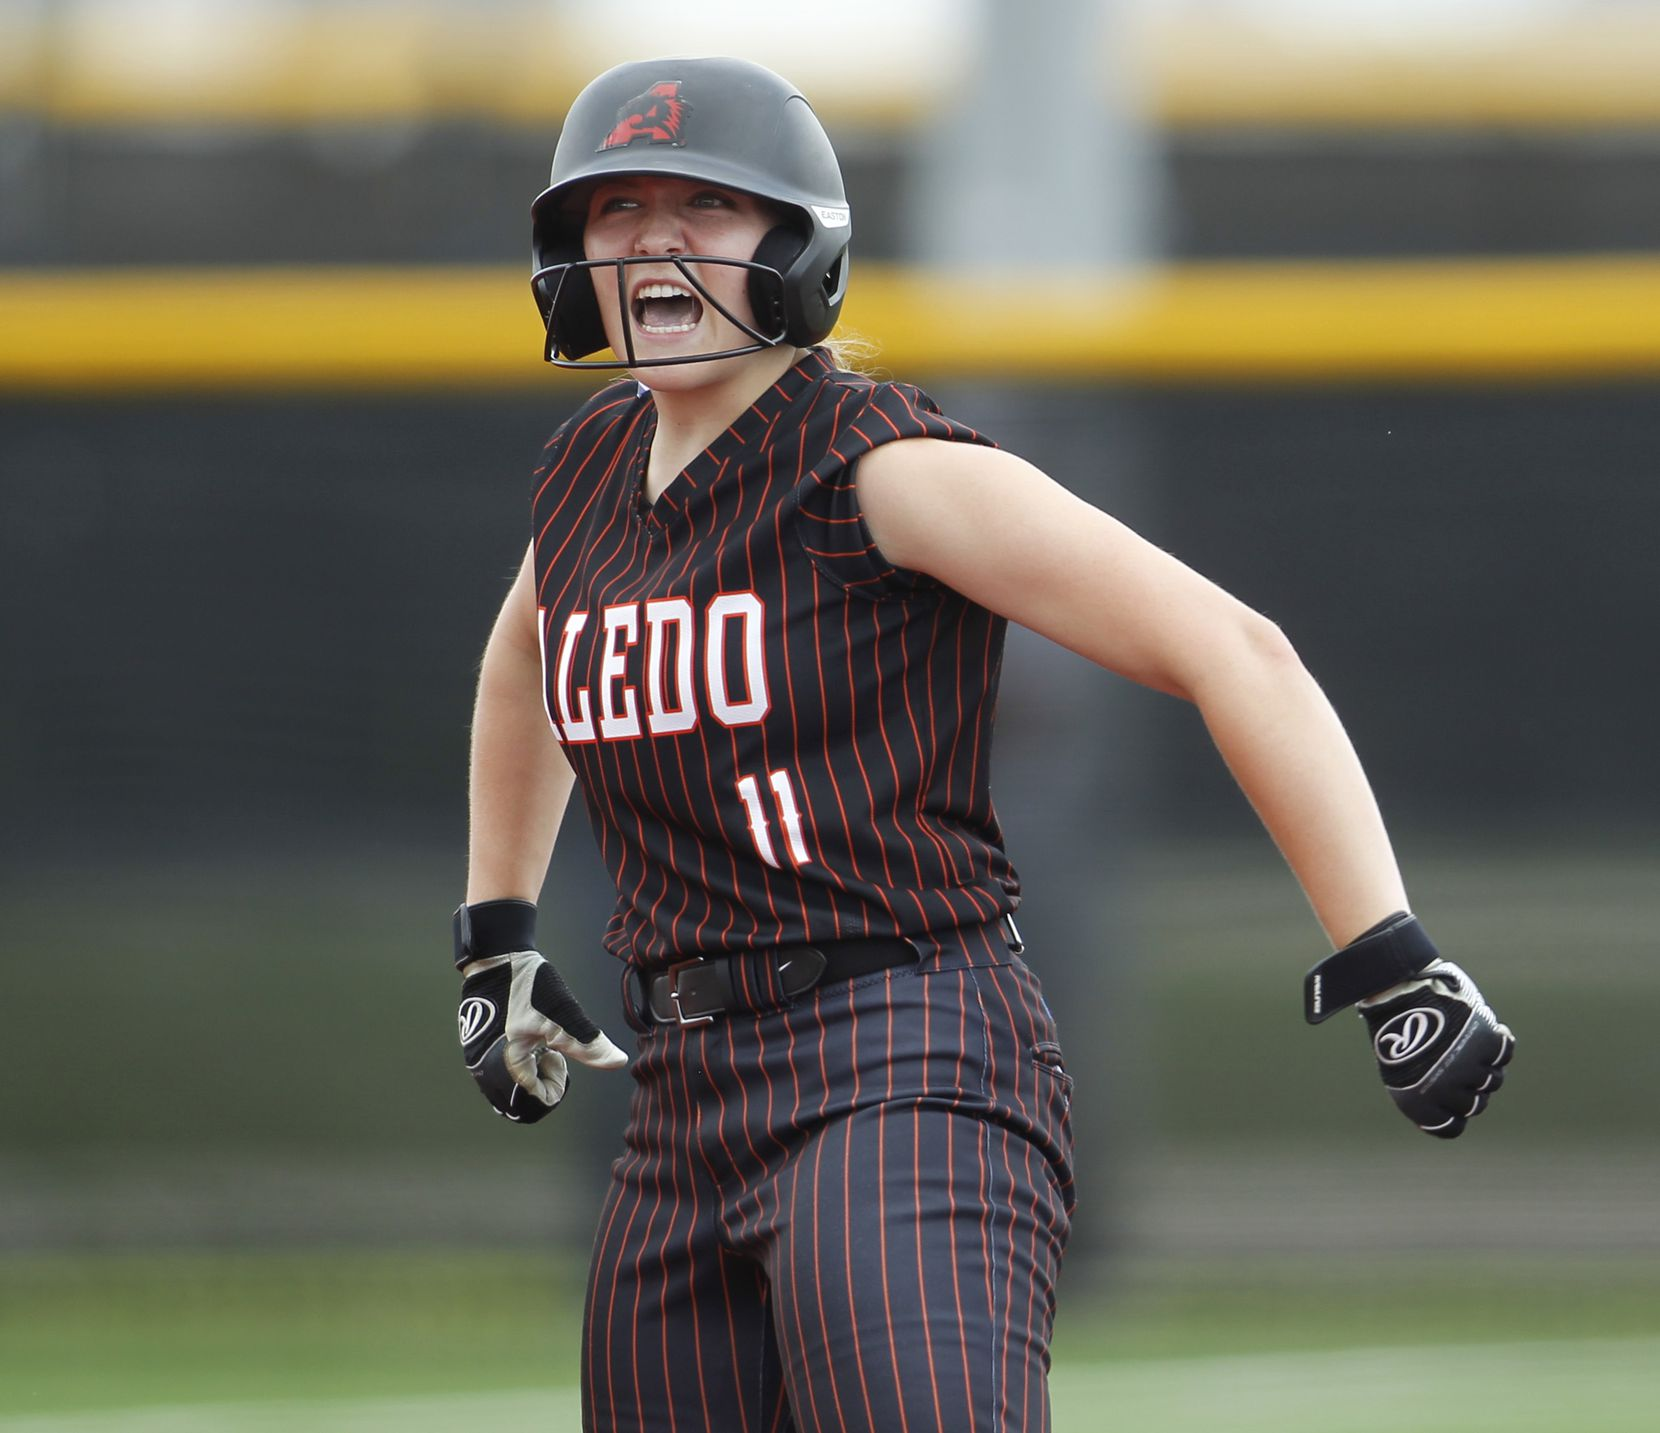 Aledo outfielder Marissa Powell (11) lets out a yell after reaching second base on a double during the top of the first inning of play against Georgetown.  The two teams played their UIL 5A state softball semifinal game at Leander Glenn High School in Leander on June 4, 2021. (Steve Hamm/ Special Contributor)